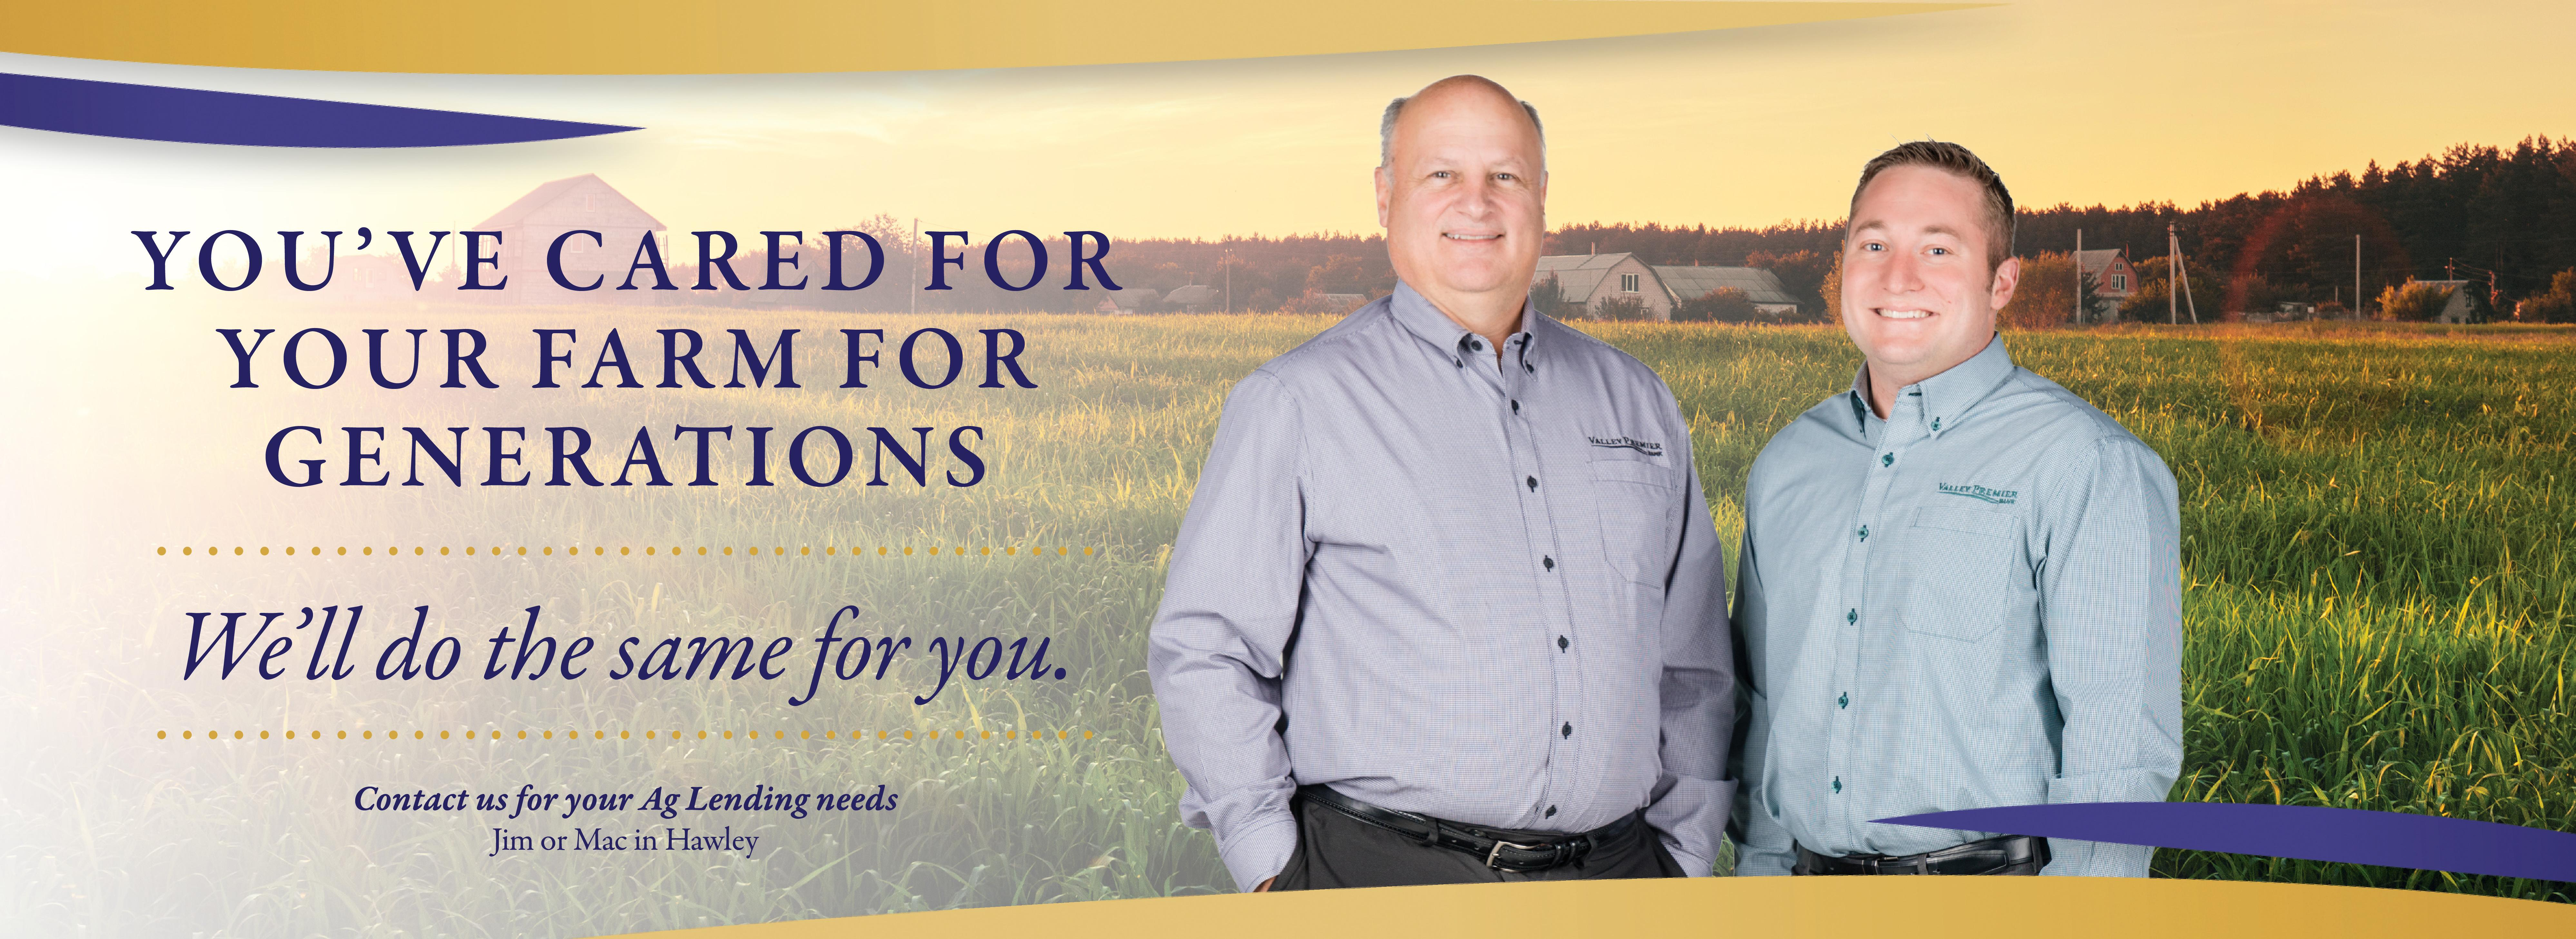 You've cared for your farm for generations.  We'll do the same for you.  Contact us for your Ag Lending needs. Jim or Mac in Hawley.  Image of field with farm in the background with Jim and Mac.